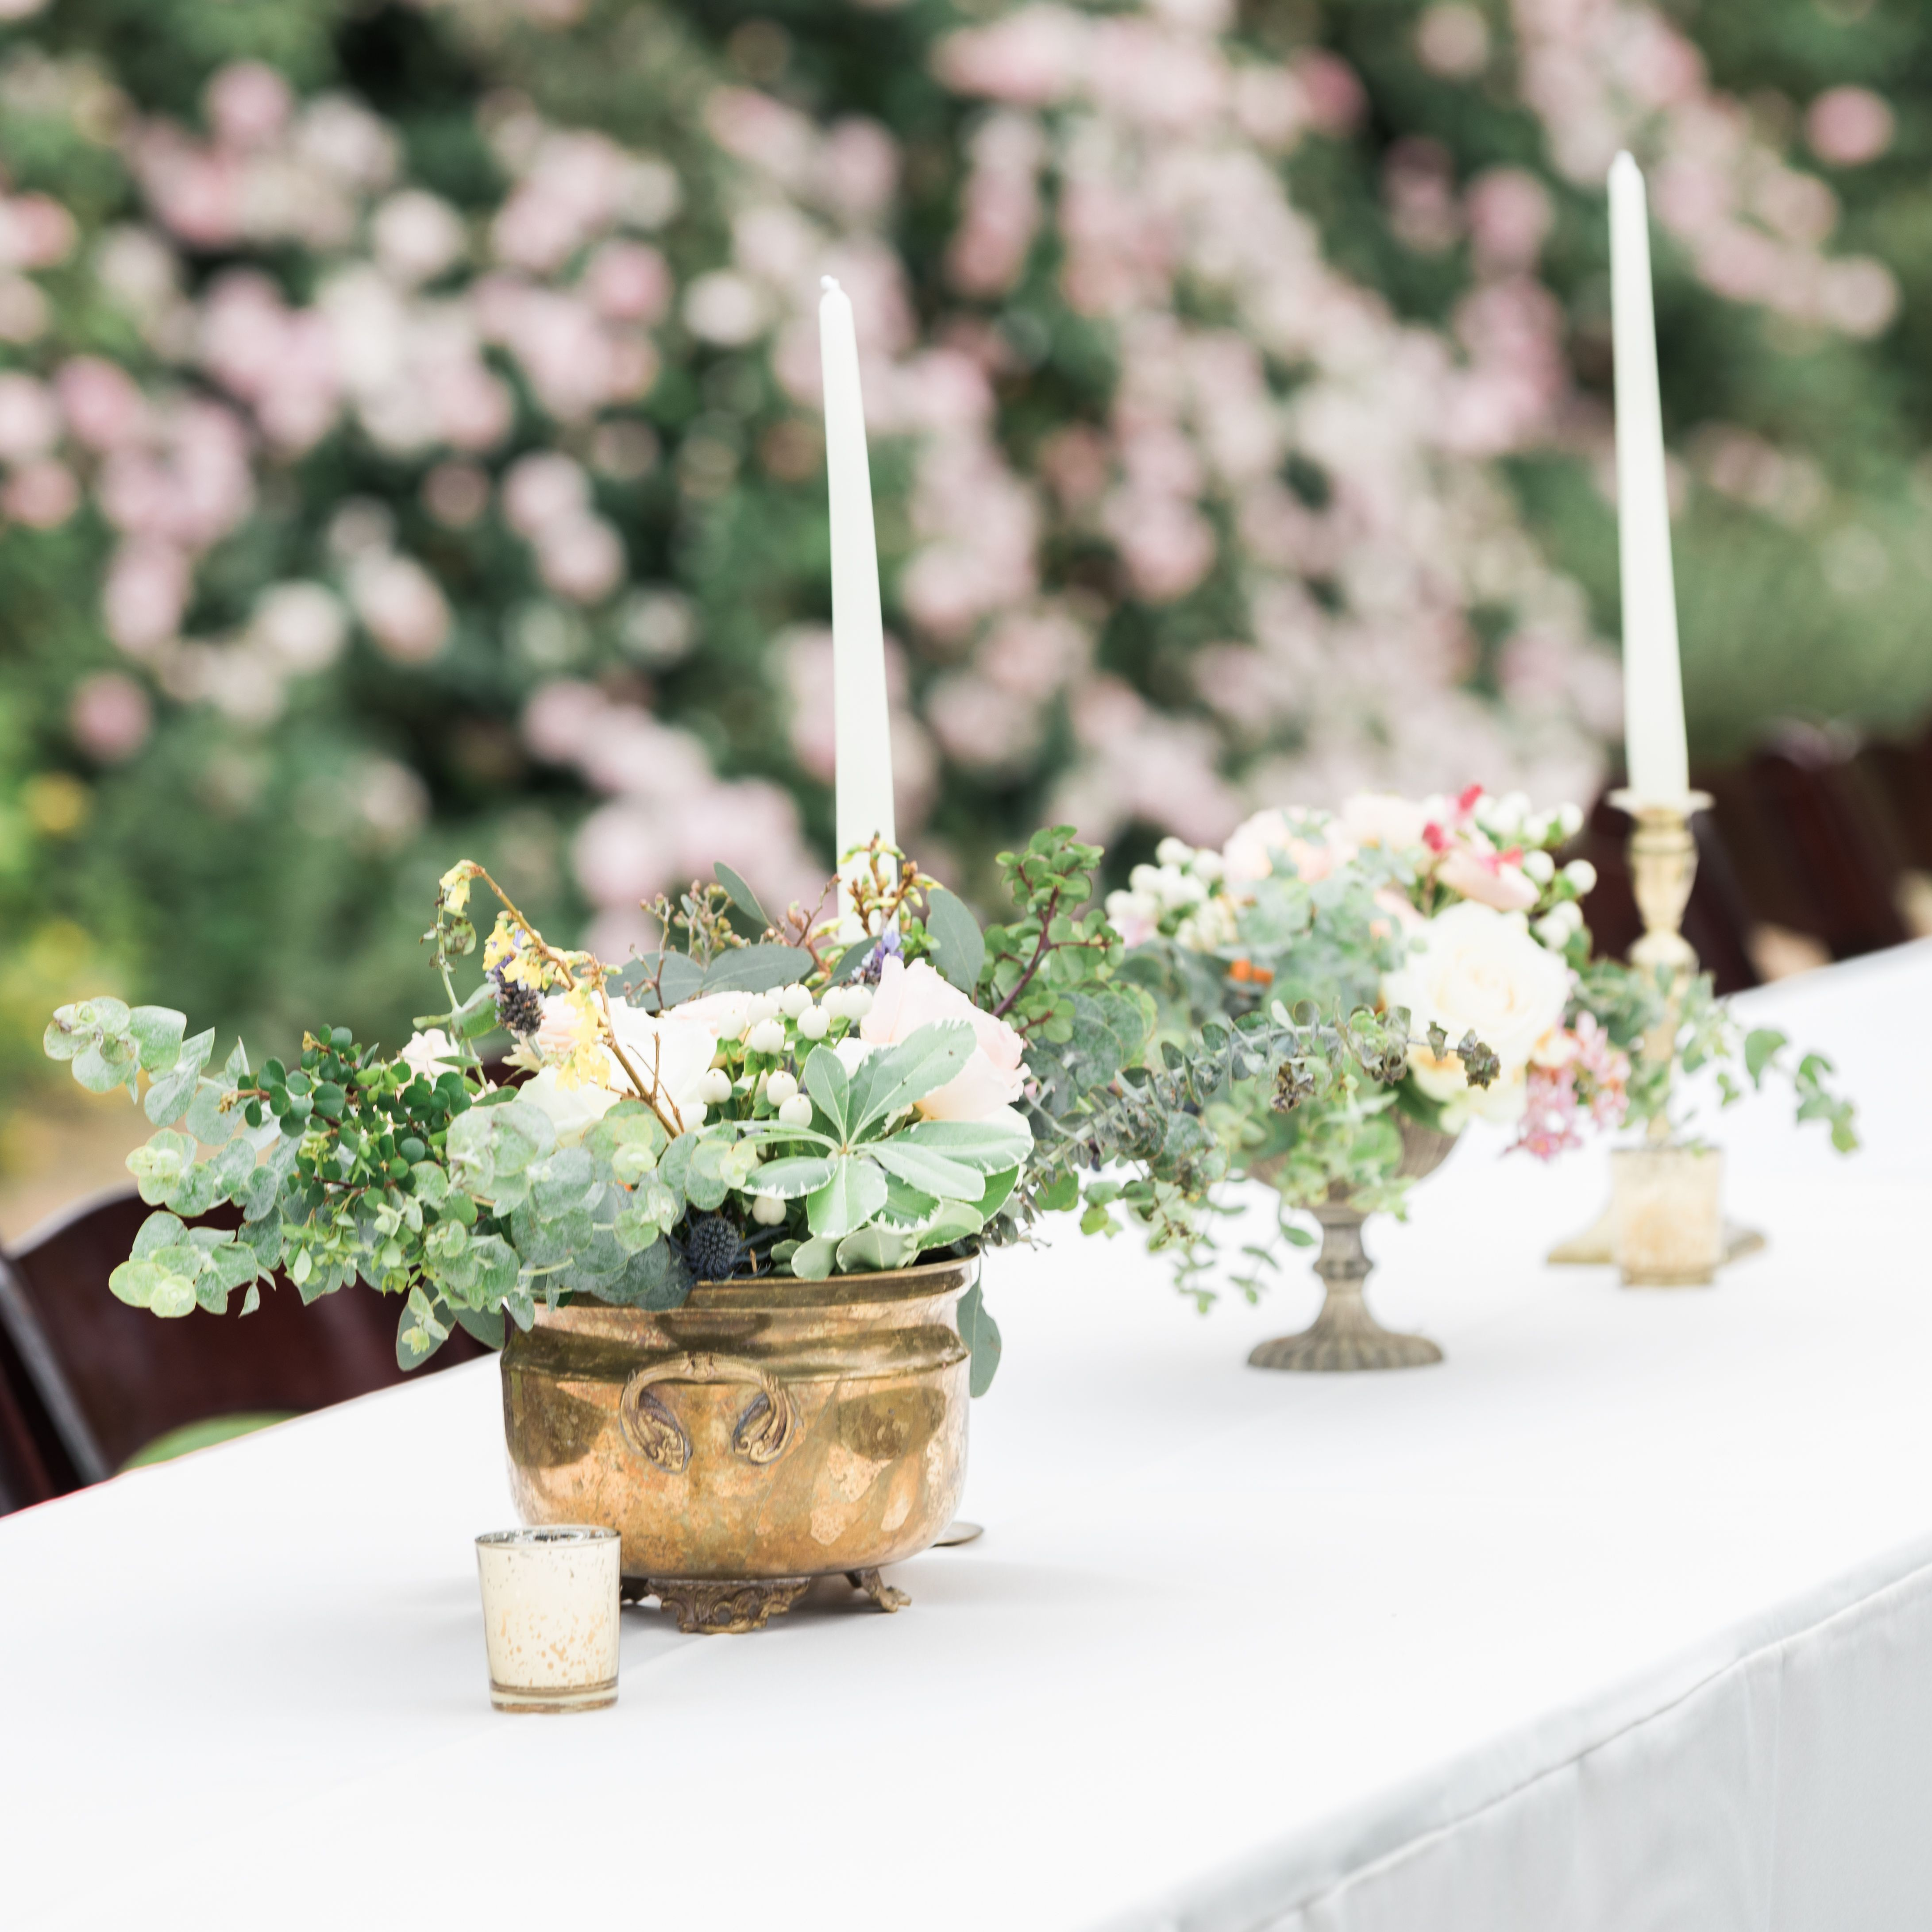 Wedding Ideas With A Difference: Beautiful Floral Arrangements And Centerpieces Make All